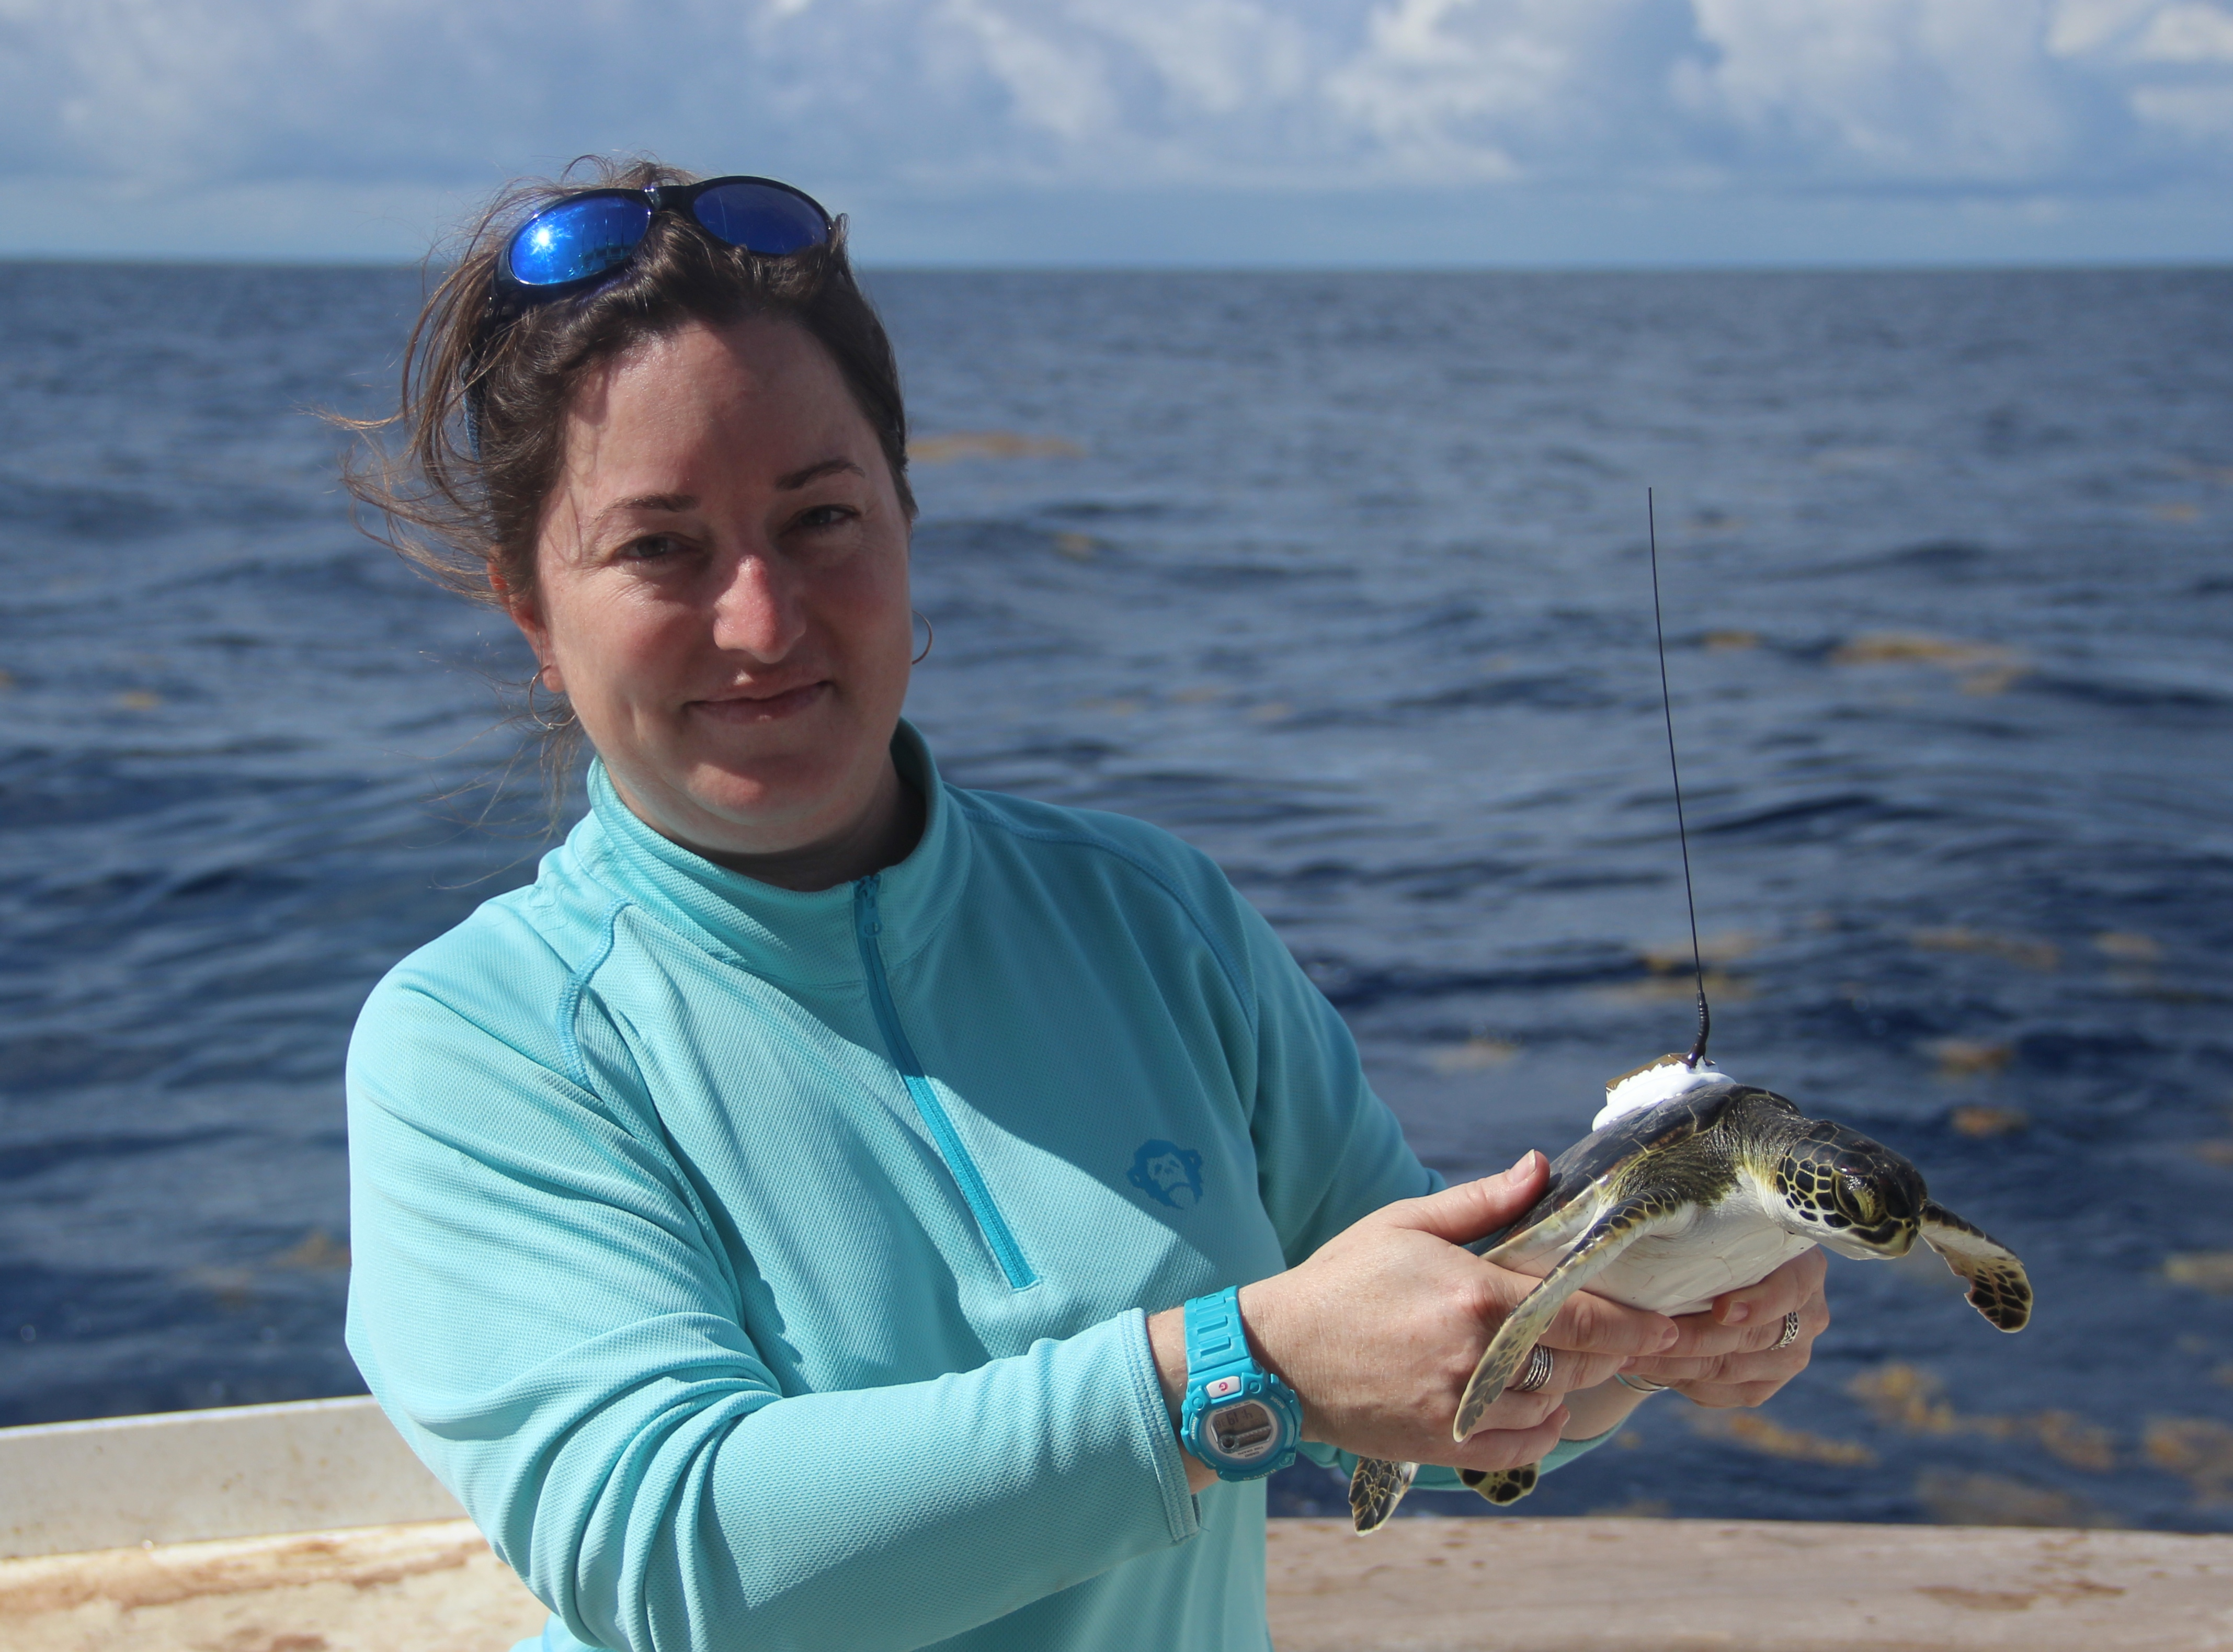 Dr Kate Mansfield shows off a new smaller tracking device on a young turtle.